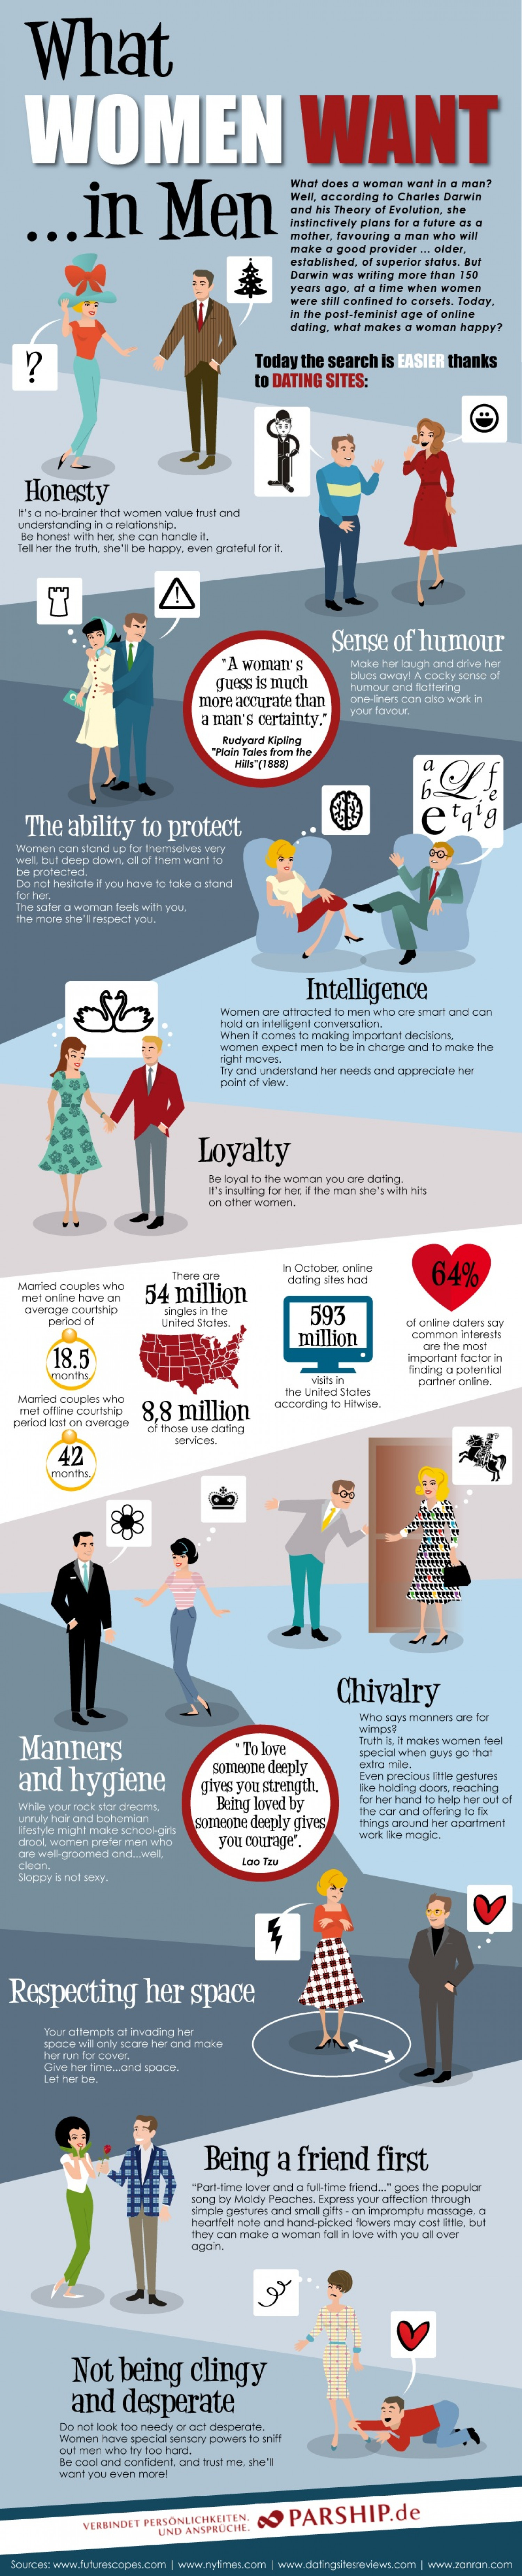 What Women Want...in Men Infographic